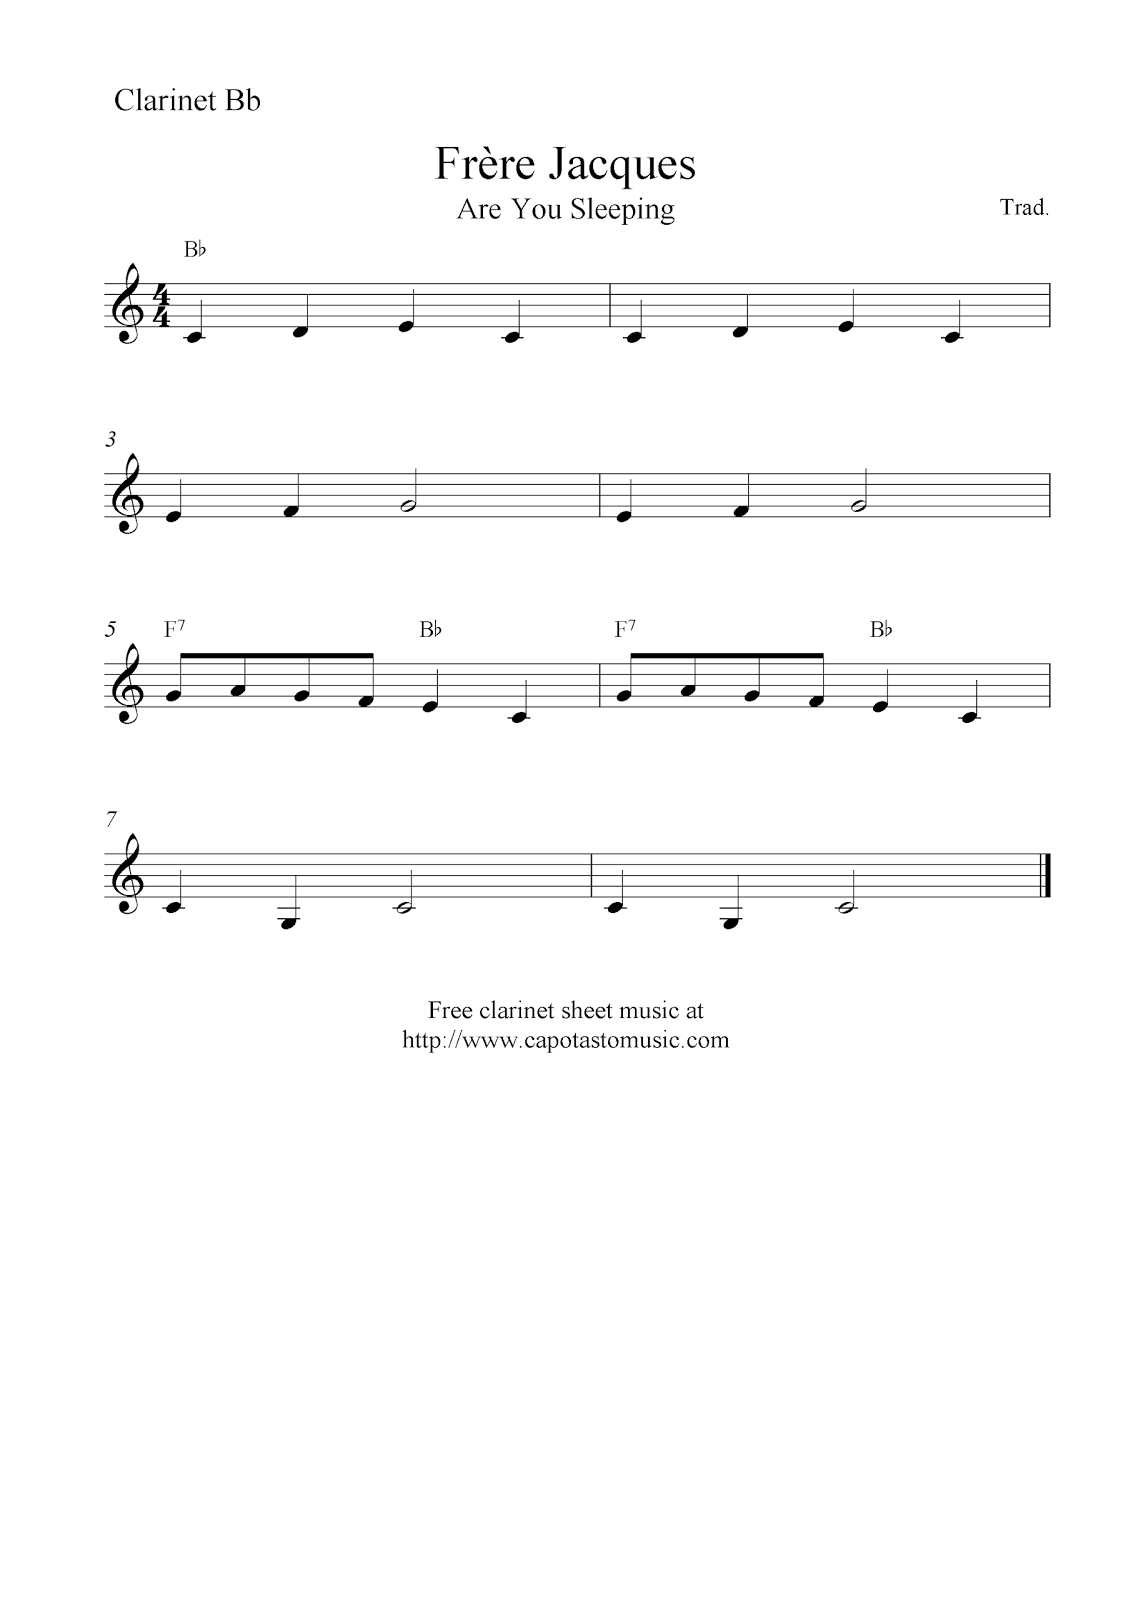 Frère Jacques (Are You Sleeping), Free Easy Clarinet Sheet Music Notes - Free Printable Clarinet Music